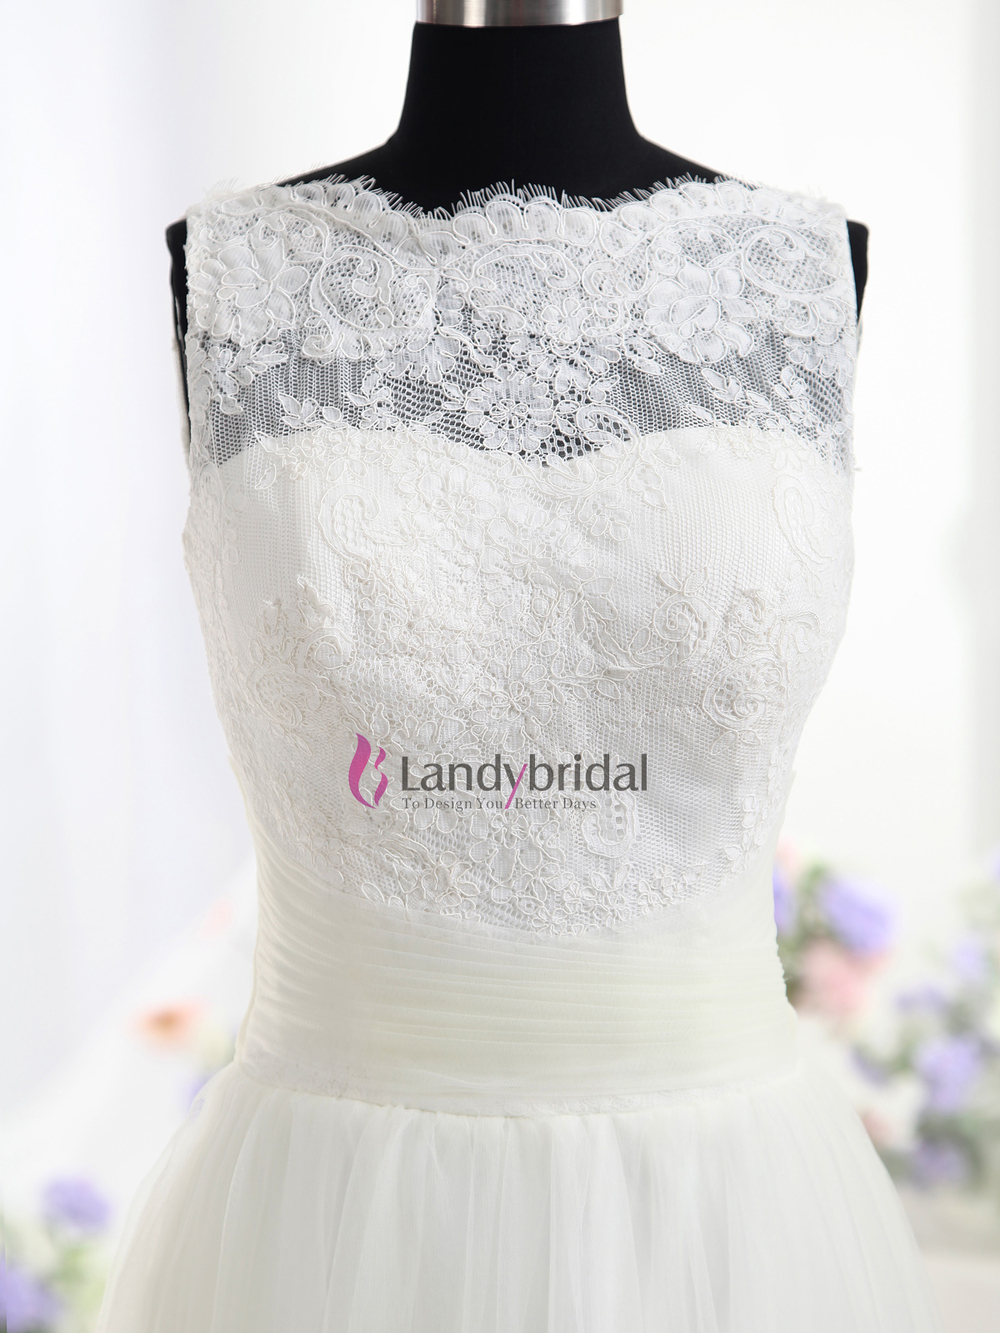 Lastest Style High Nekline Lace Bodice Tank Top Wedding Dressin